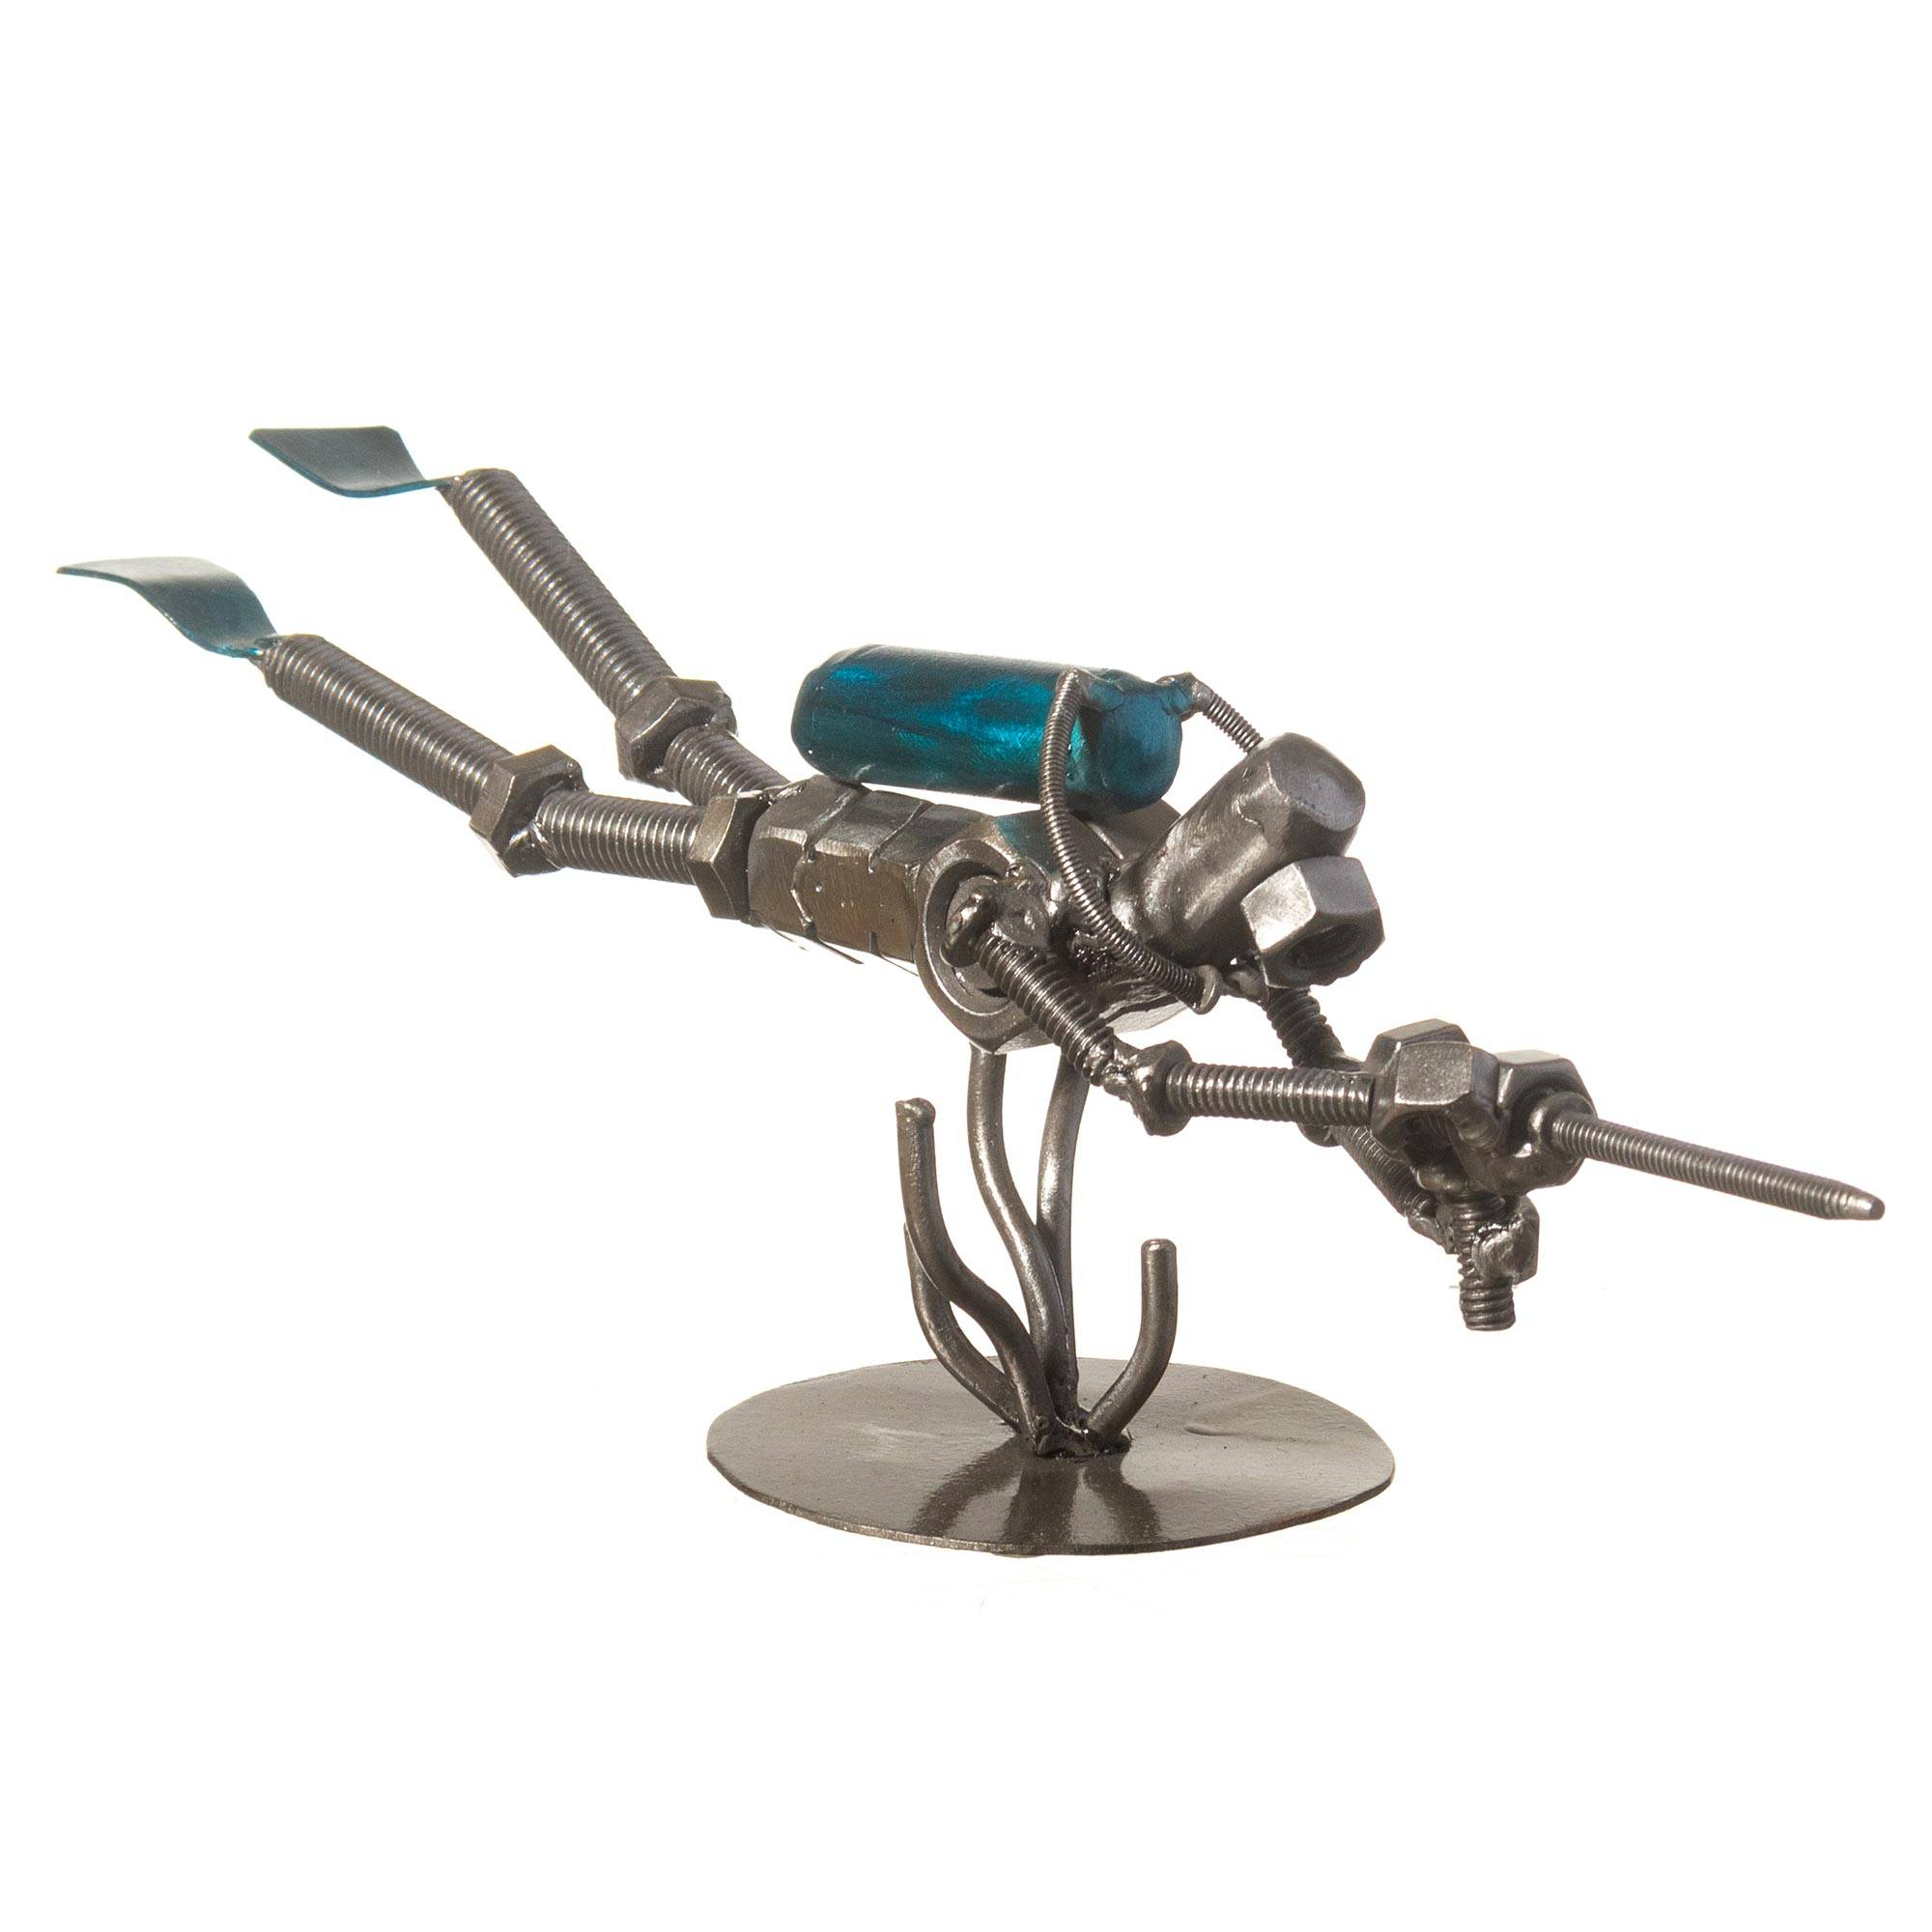 Unicef Uk Market Recycled Metal Sculpture Rustic Scuba